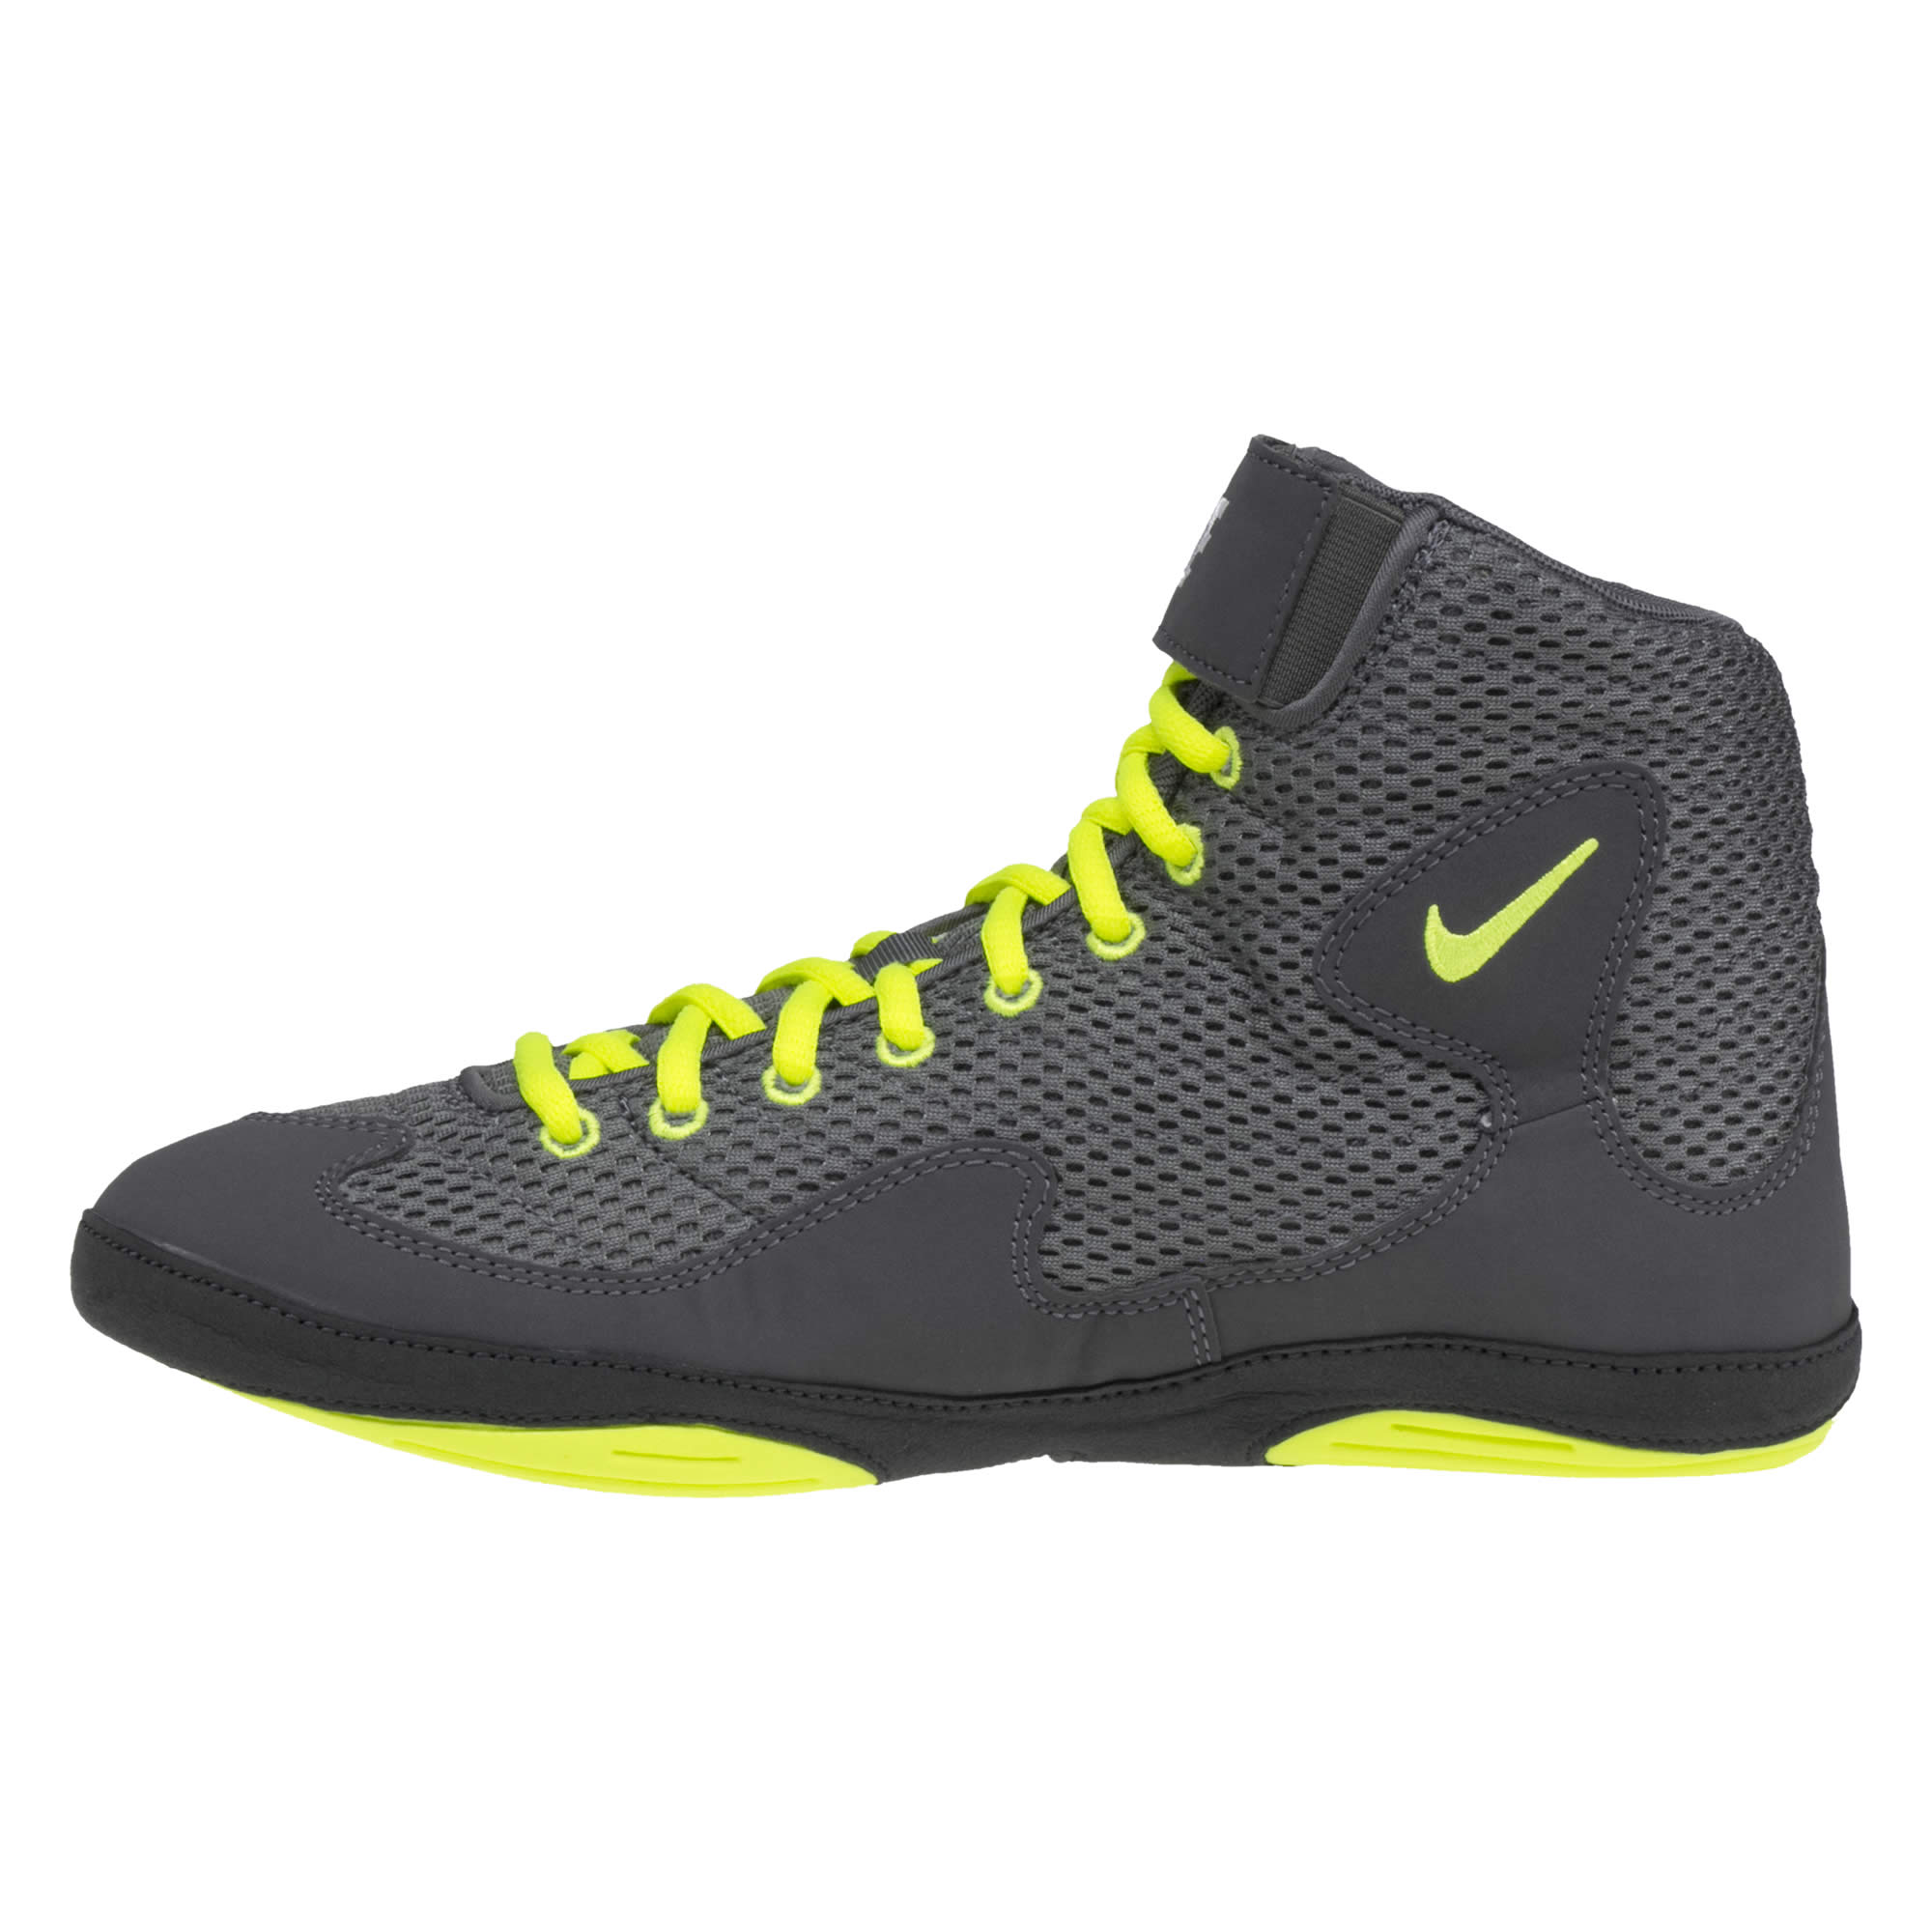 sale retailer 65a12 b340e Nike Inflict 3 Shoes   WrestlingMart   Free Shipping … Inflict 3 Dark Grey  ...